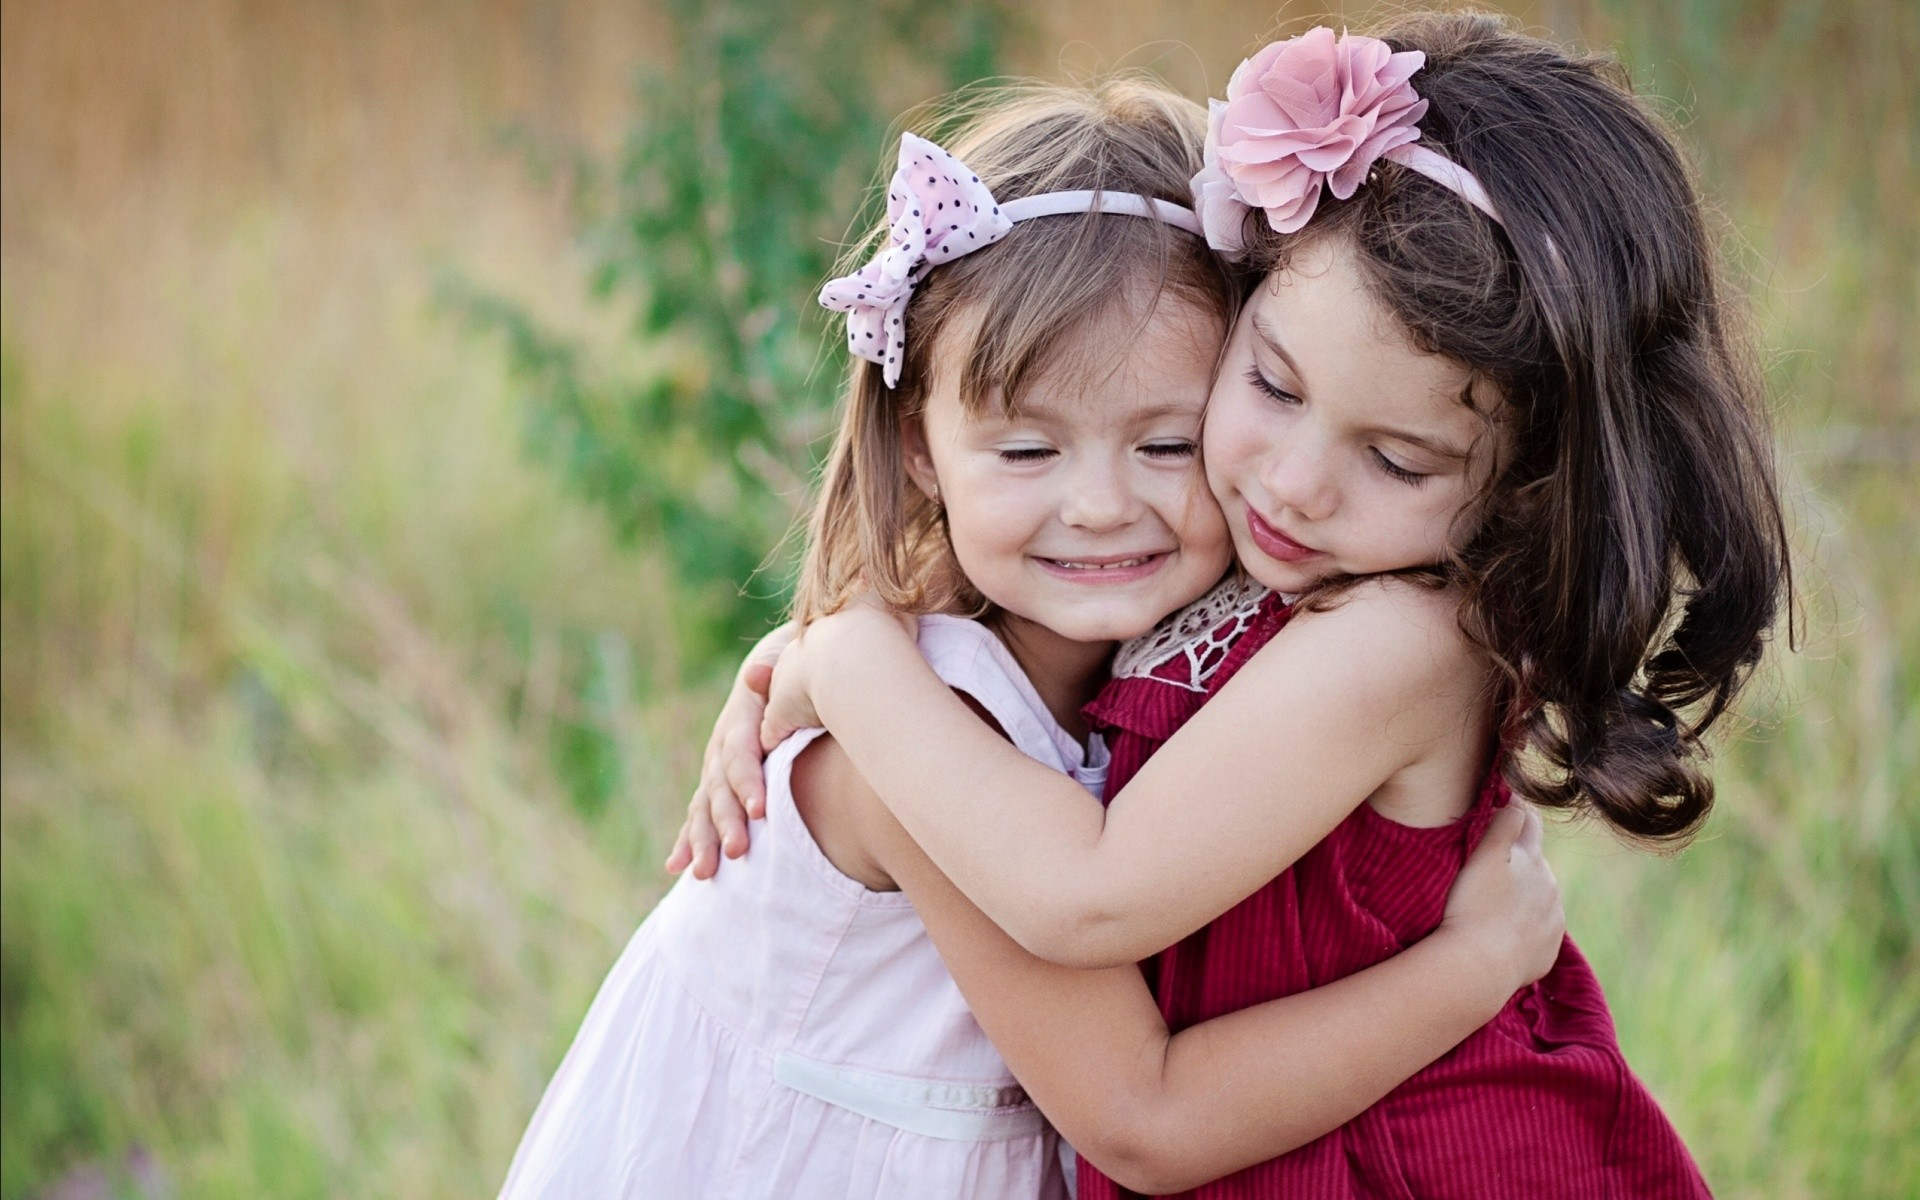 1920x1080 cute twins babies wallpapers images HD Wallpapers Buzz 1920×1200 Twins Wallpapers (50 Wallpapers